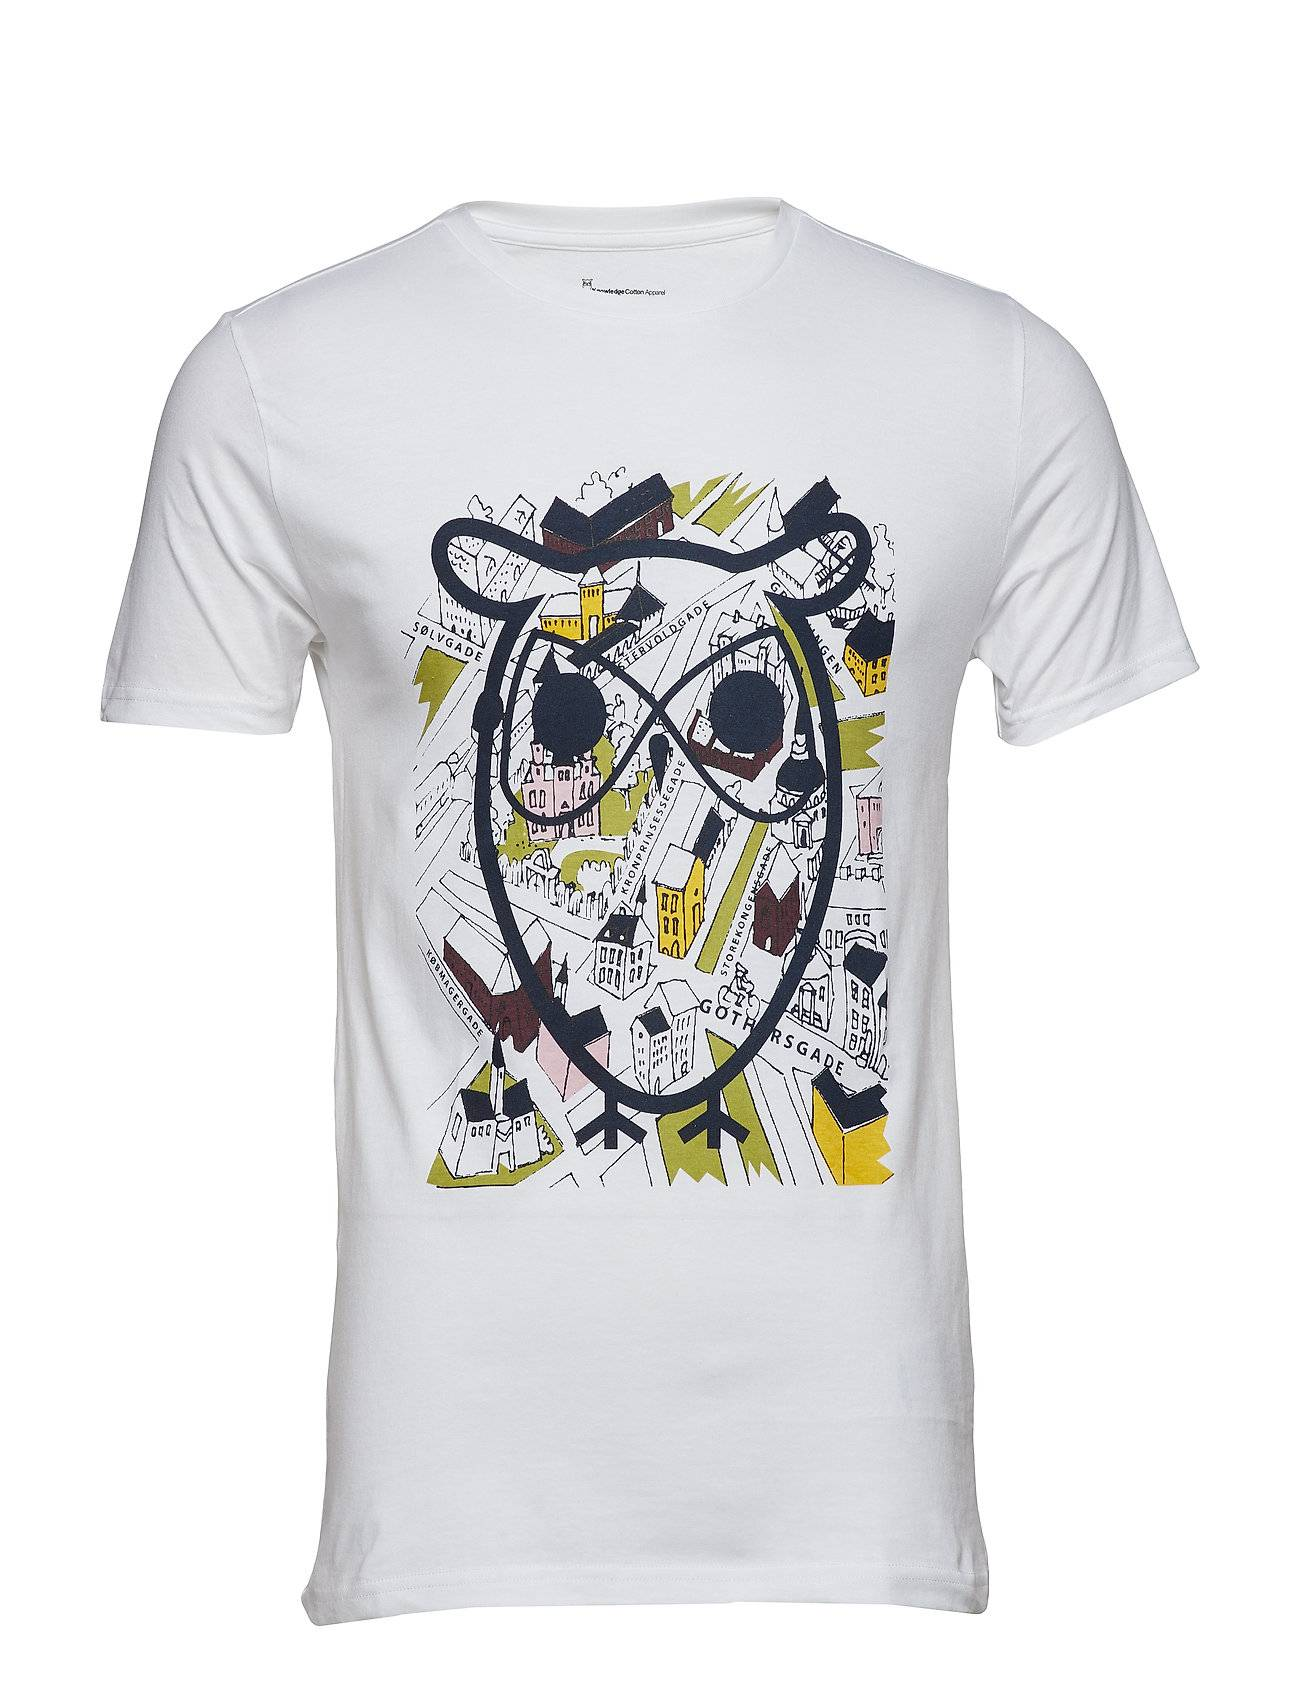 Knowledge Cotton Apparel T-Shirt With Street Print And Owl -